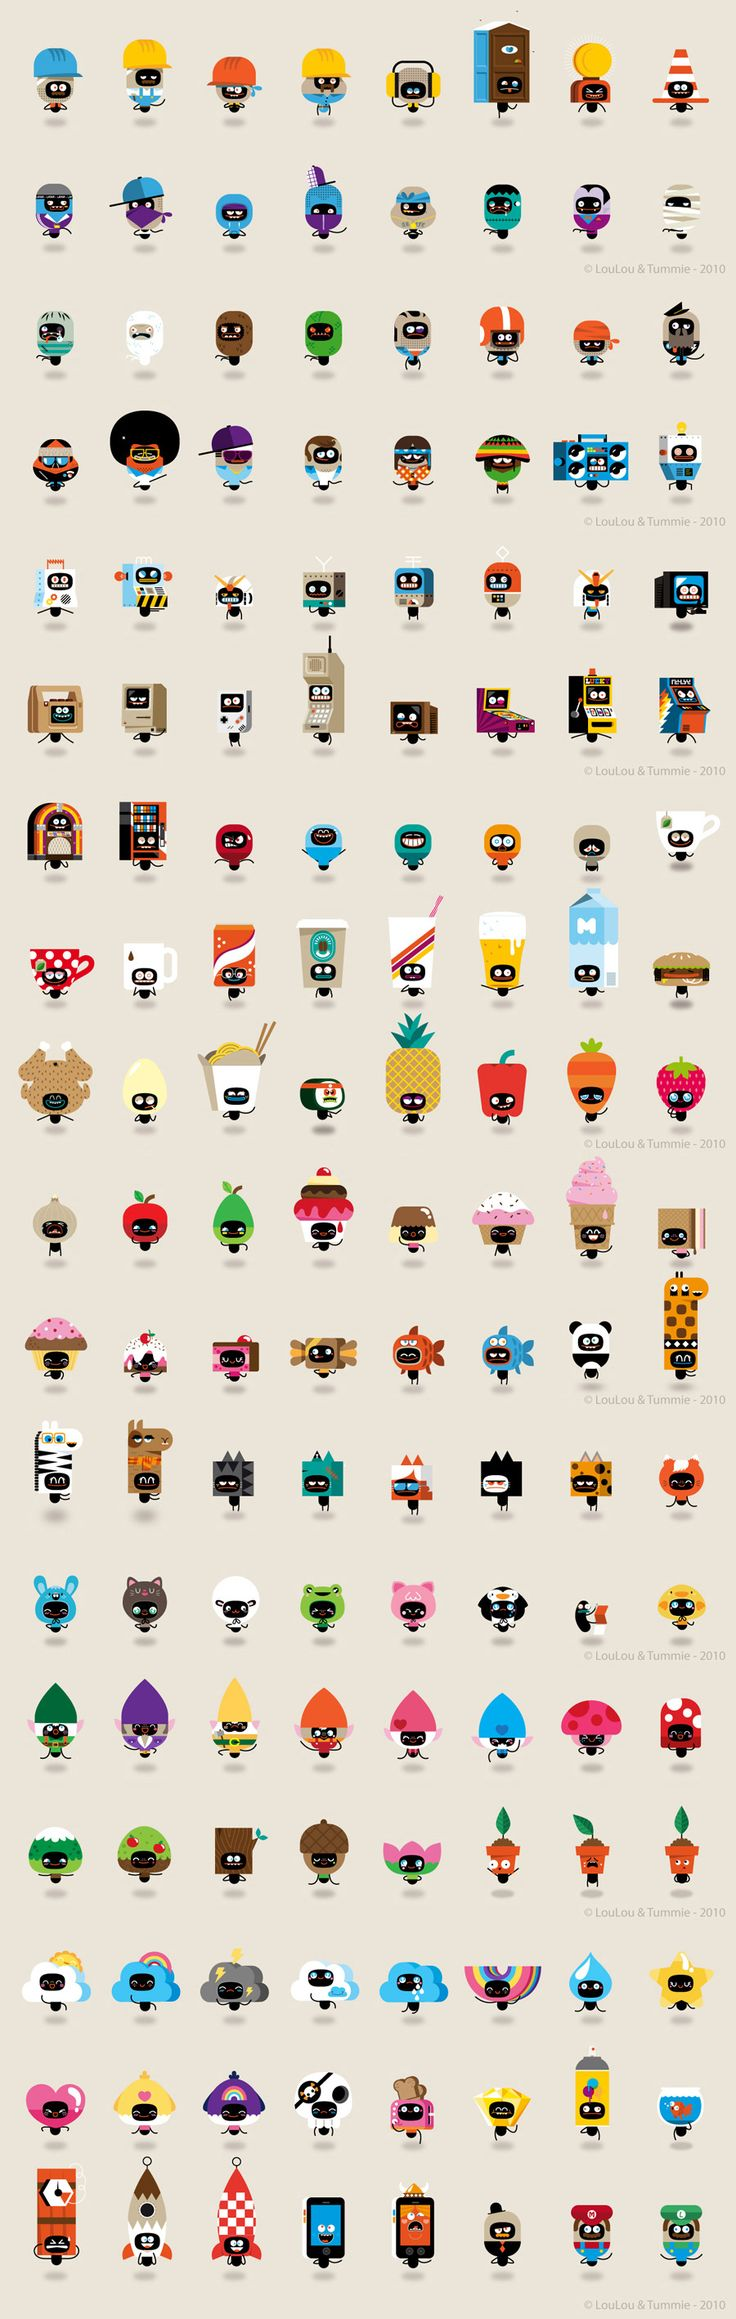 characters-designed-by-loulou-and-tummie.jpg 900×2,836 pixels There so diversely the same!